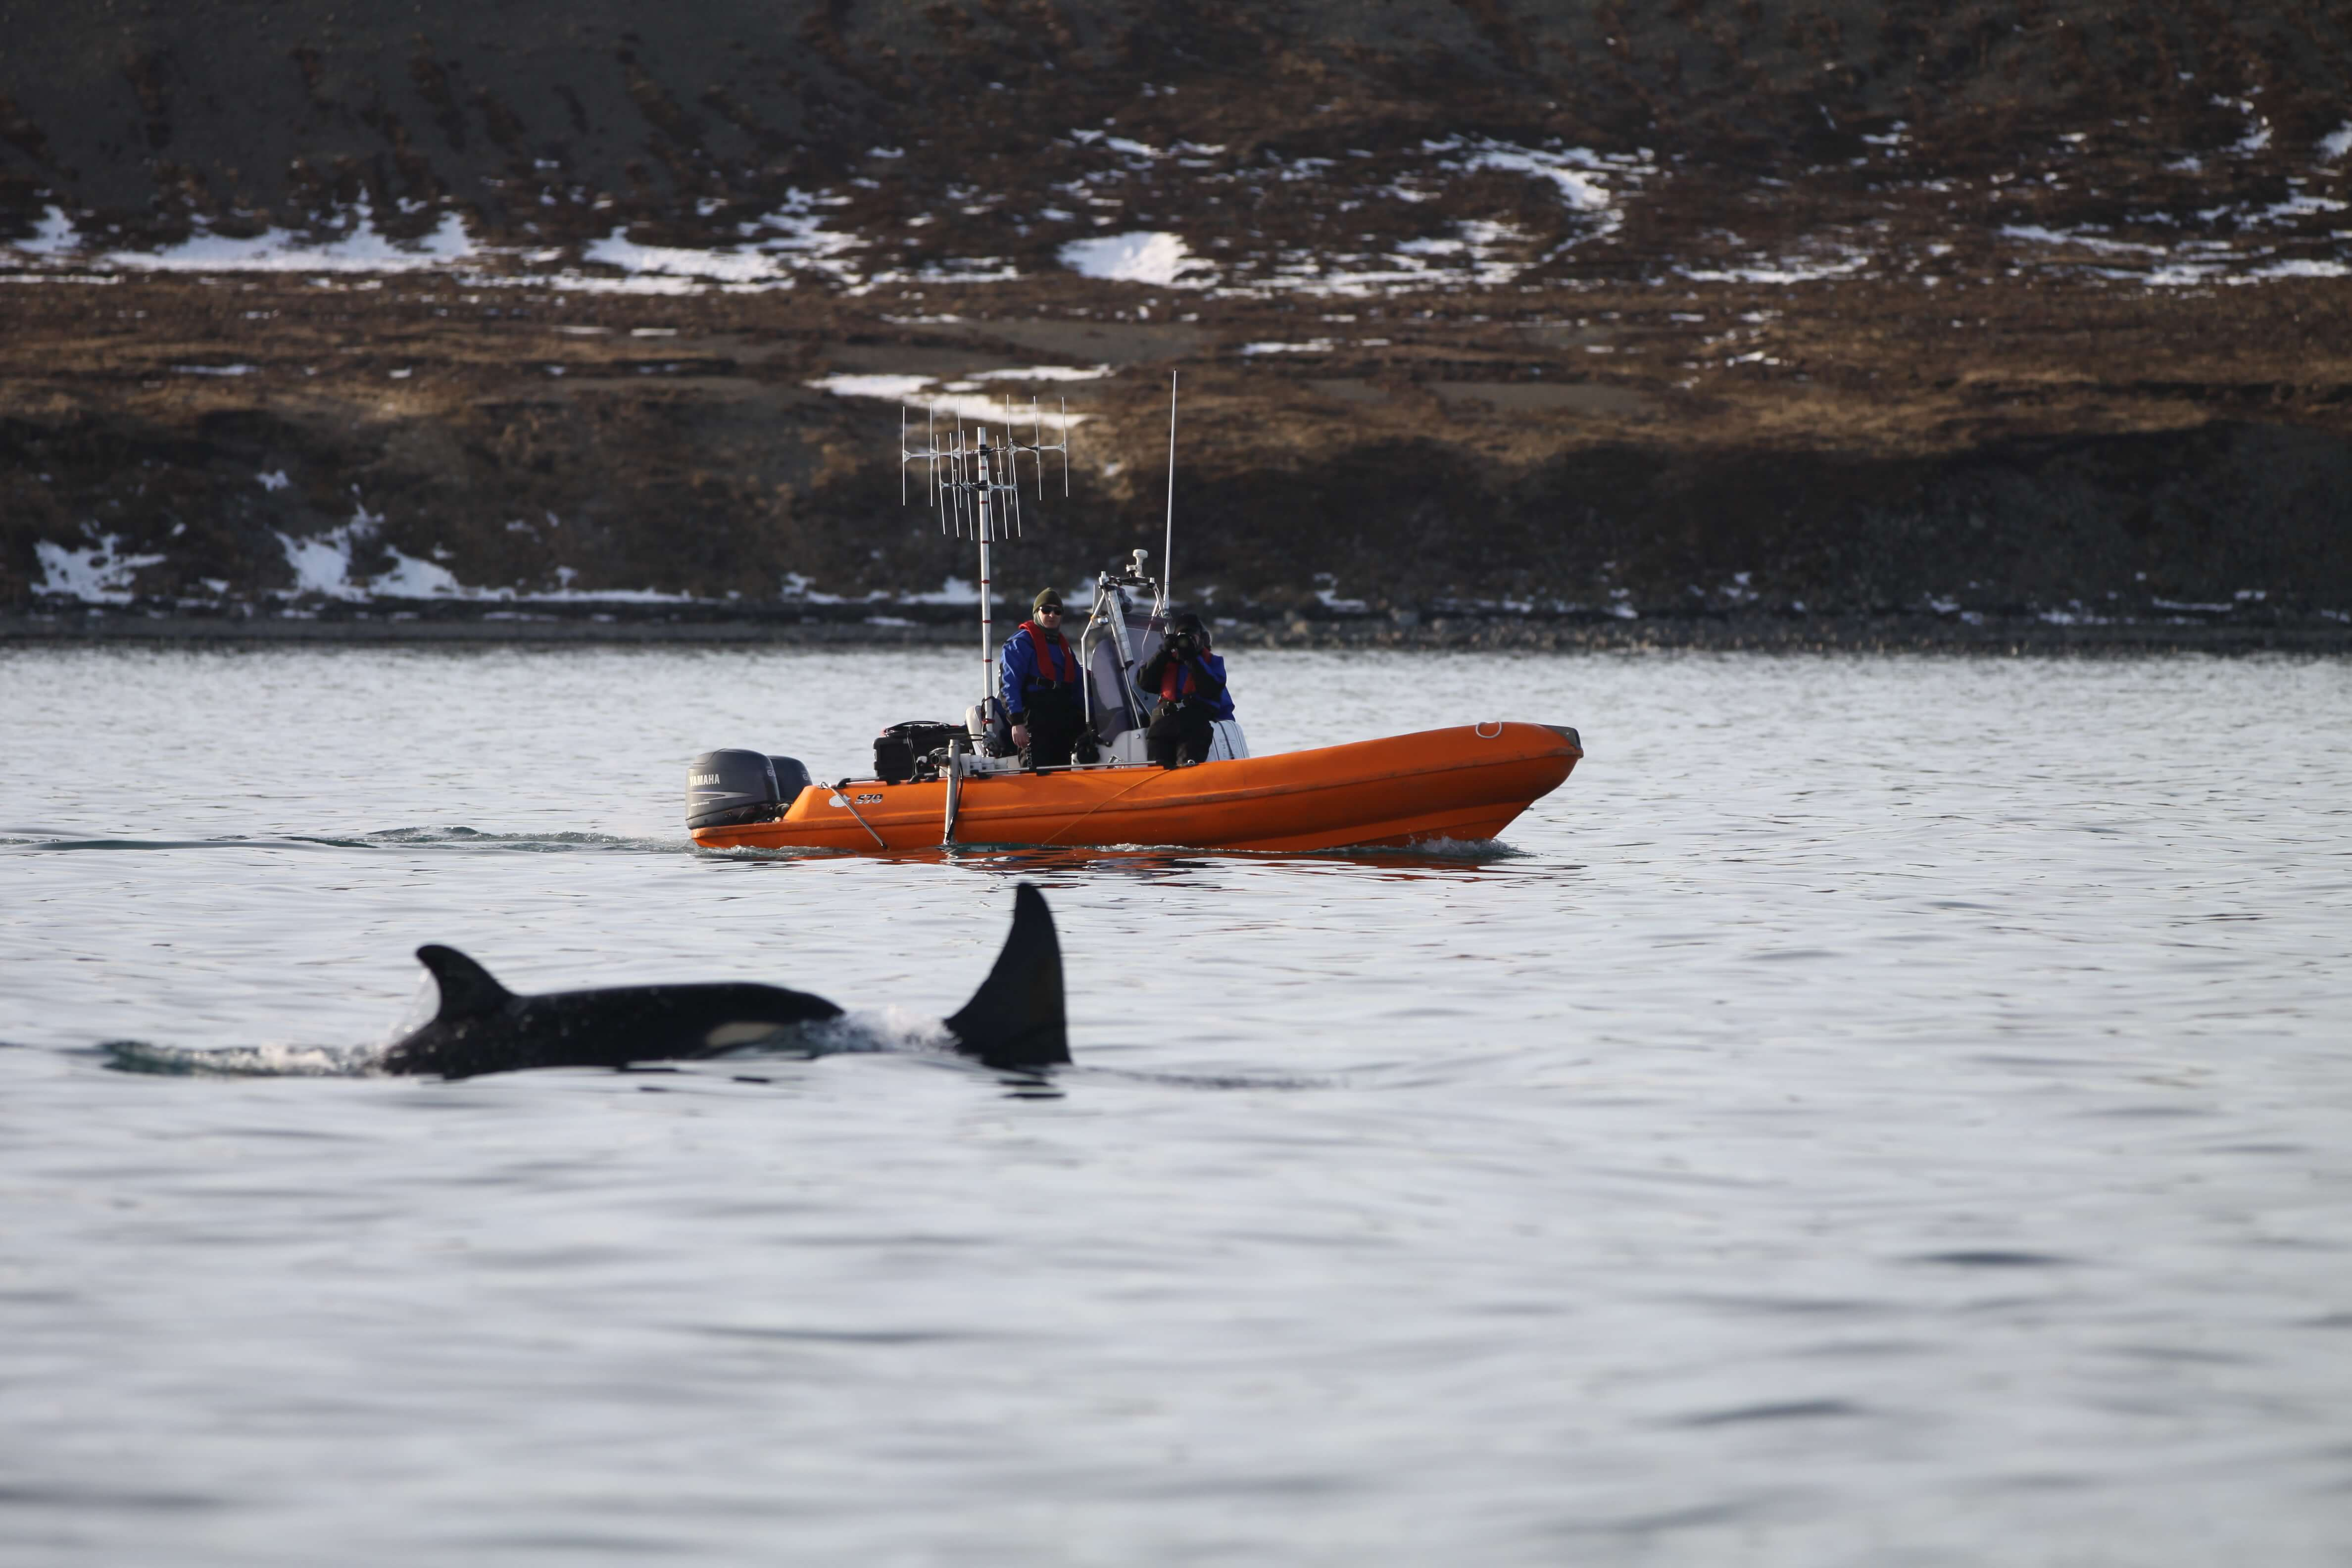 Researchers with killer whale